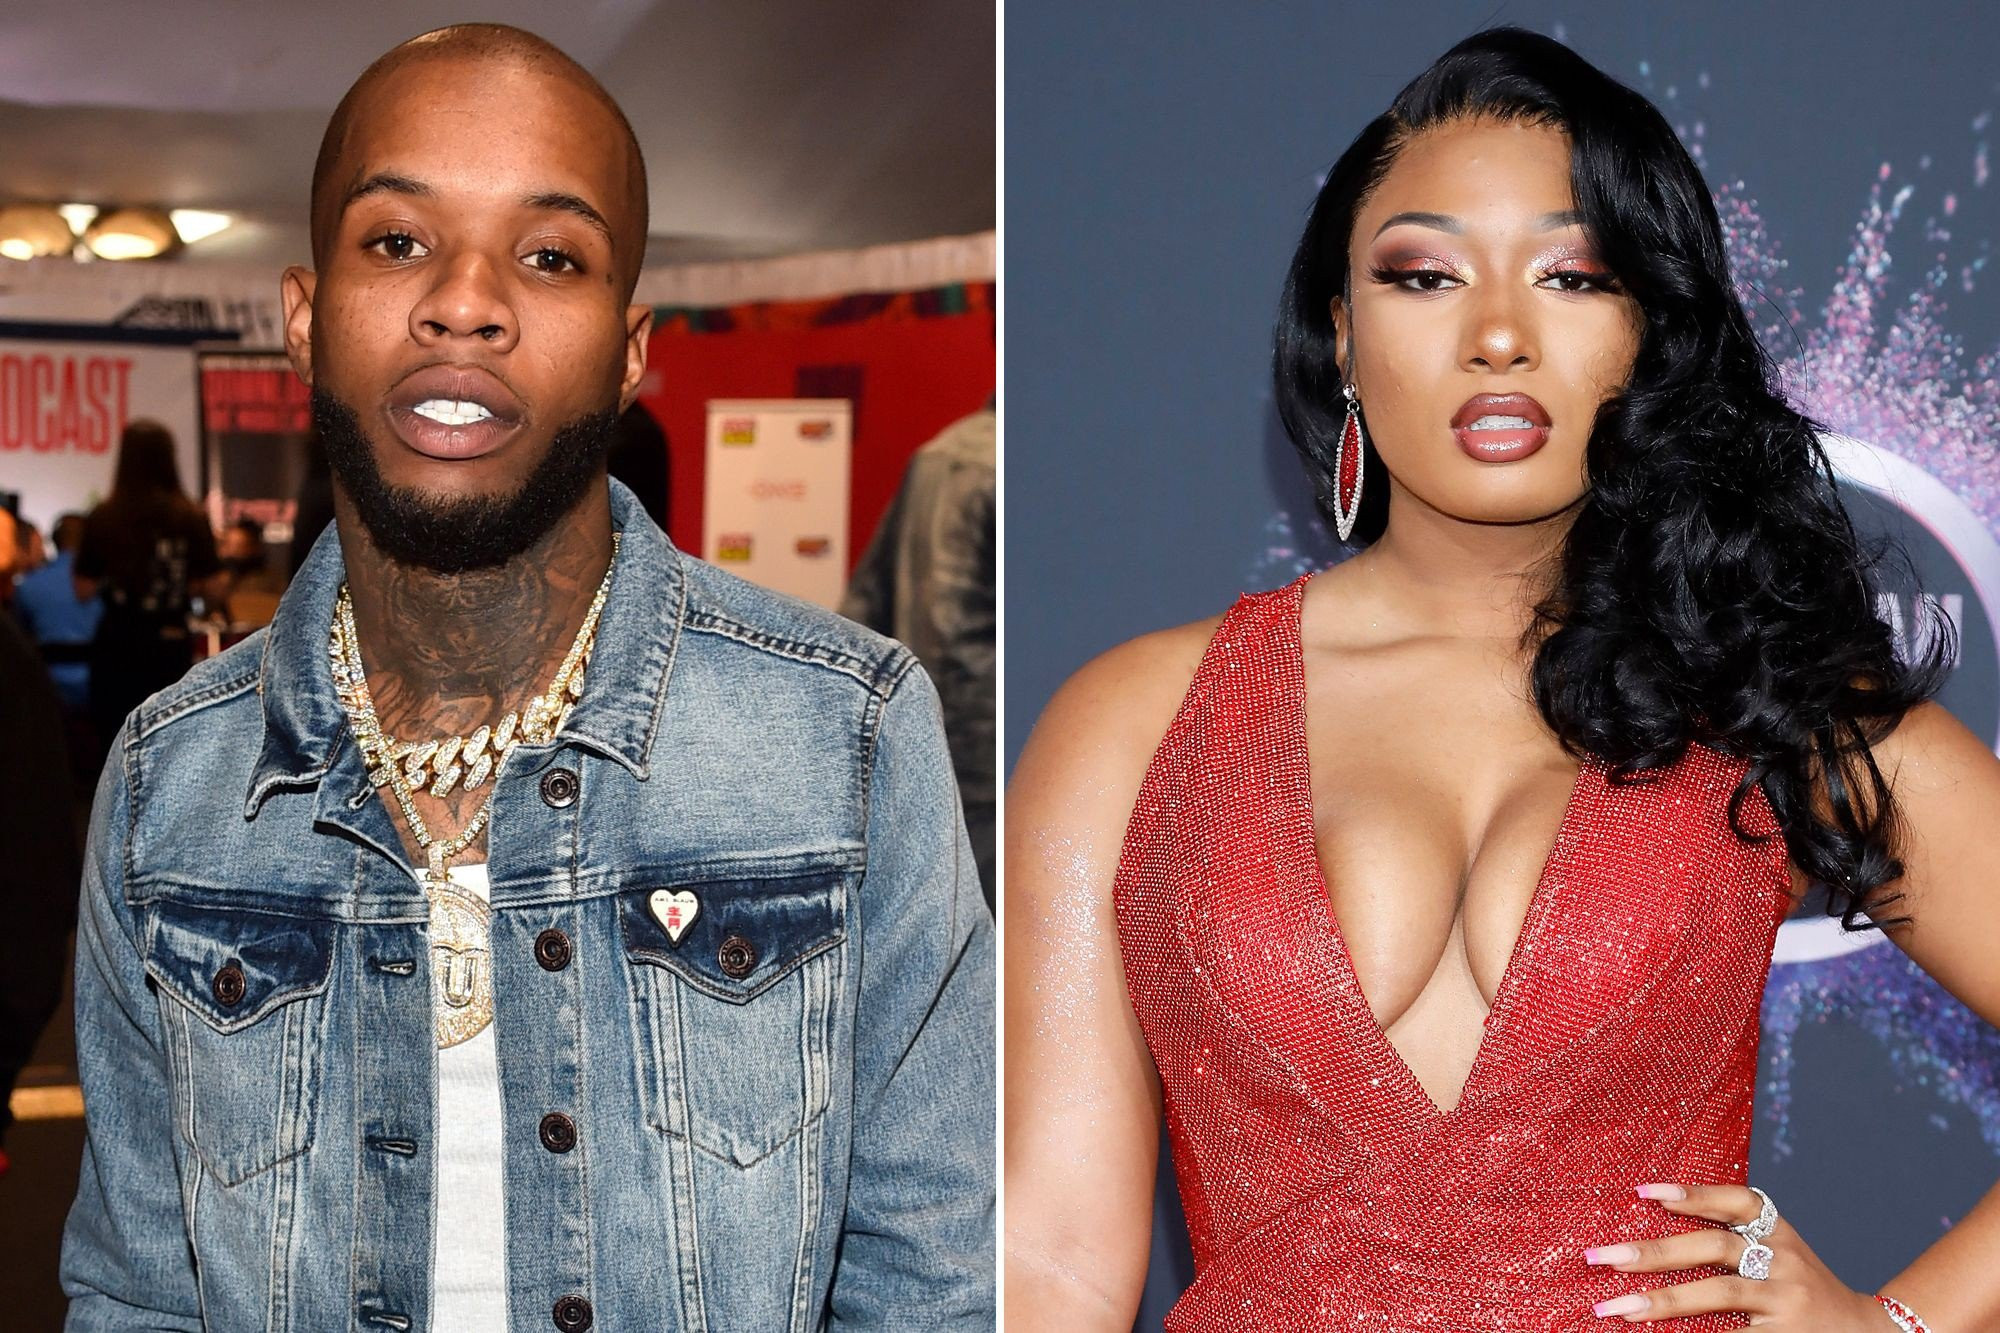 Rapper, Tory Lanez charged with felony assault in Megan Thee Stallion shooting